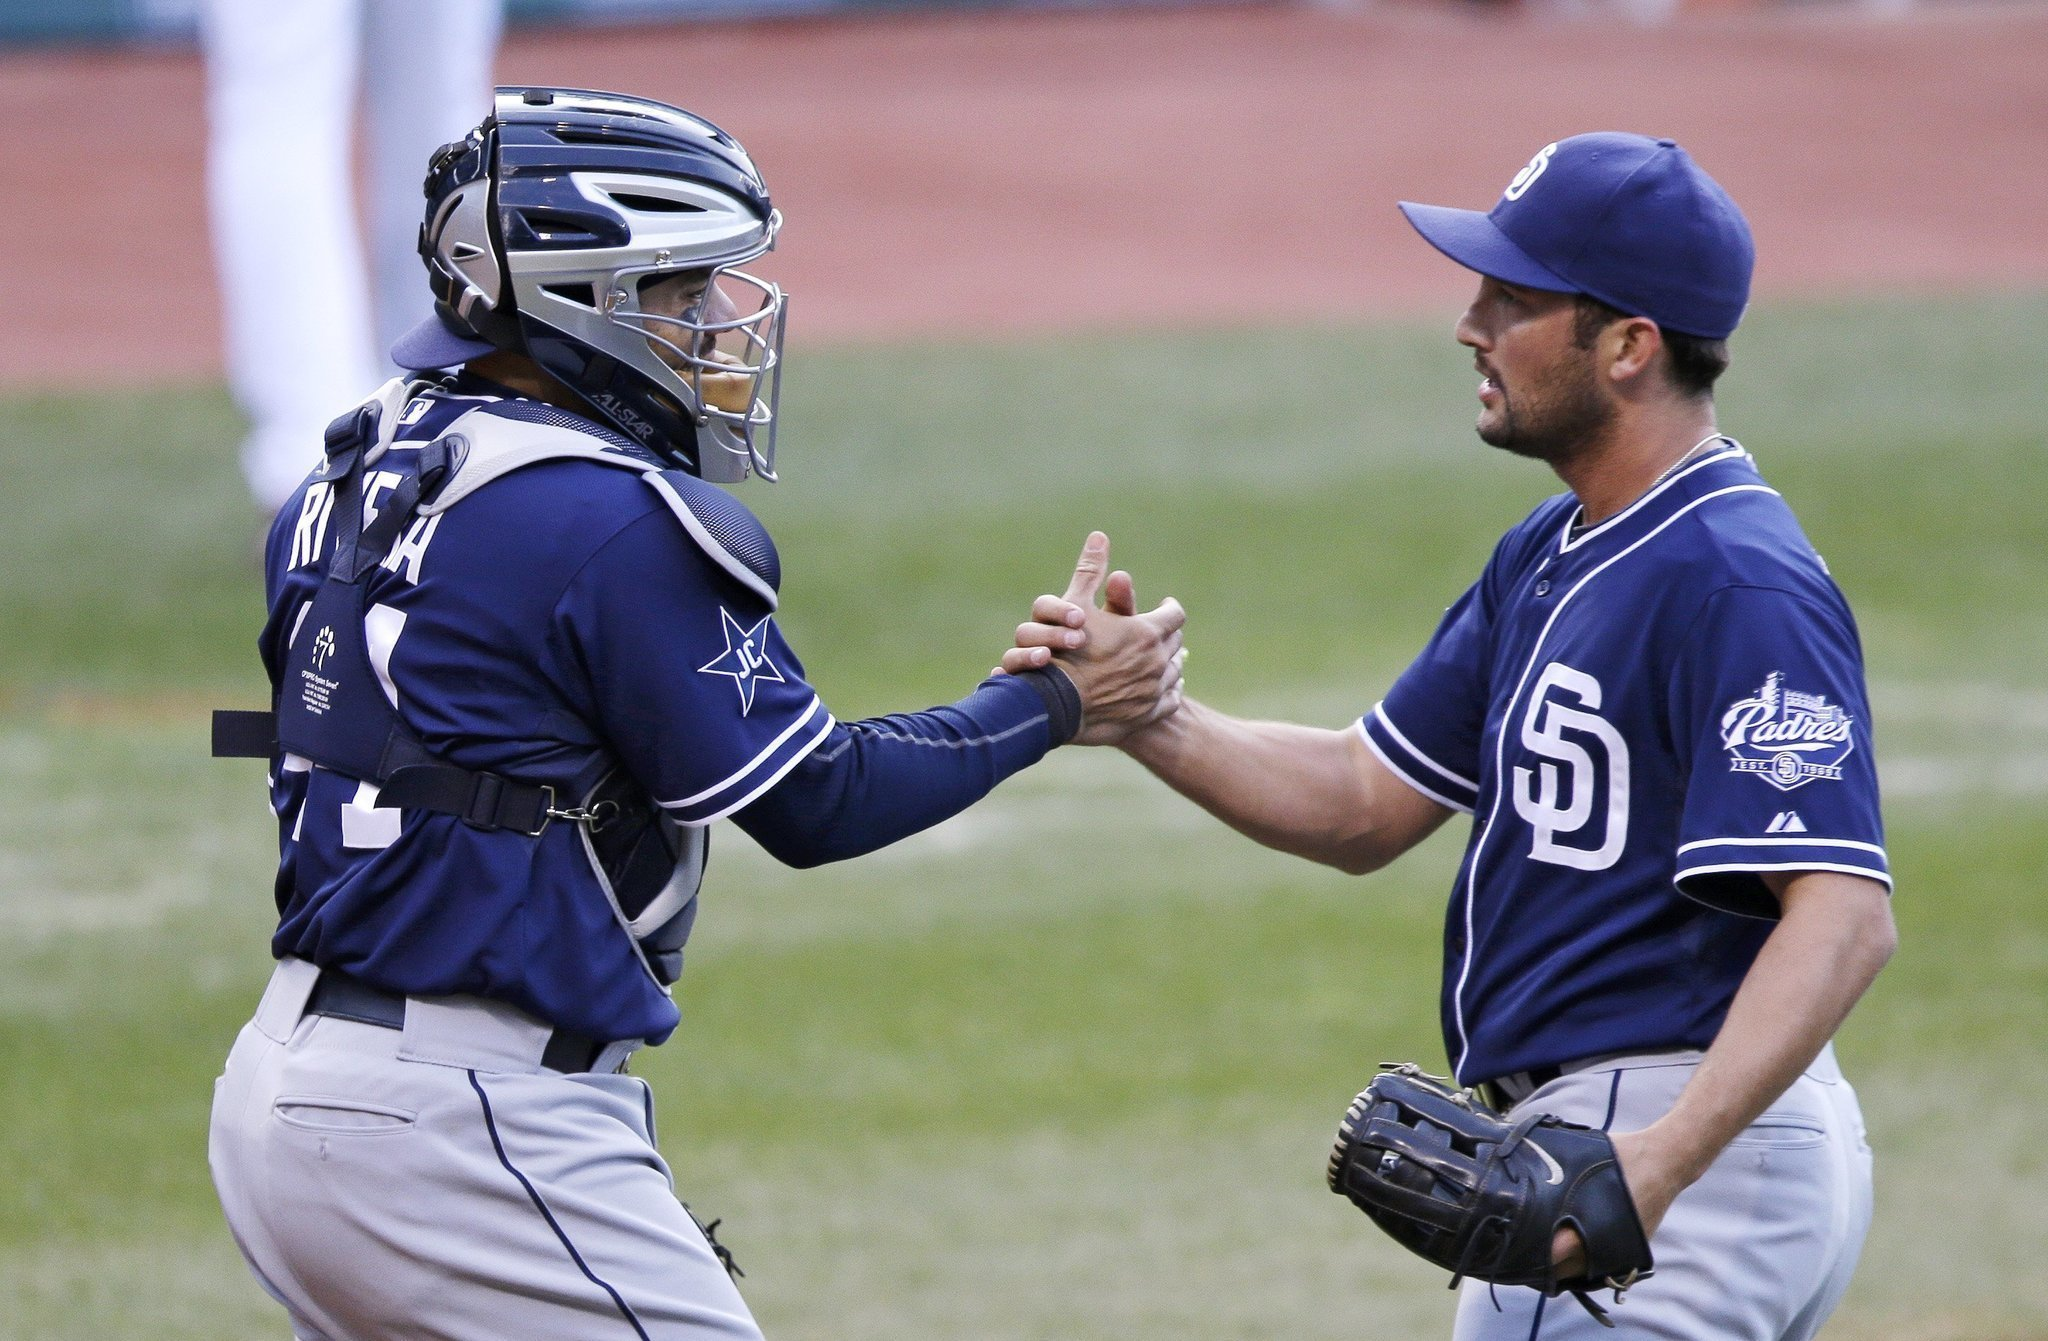 Rivera frames another one-hitter - The San Diego Union-Tribune